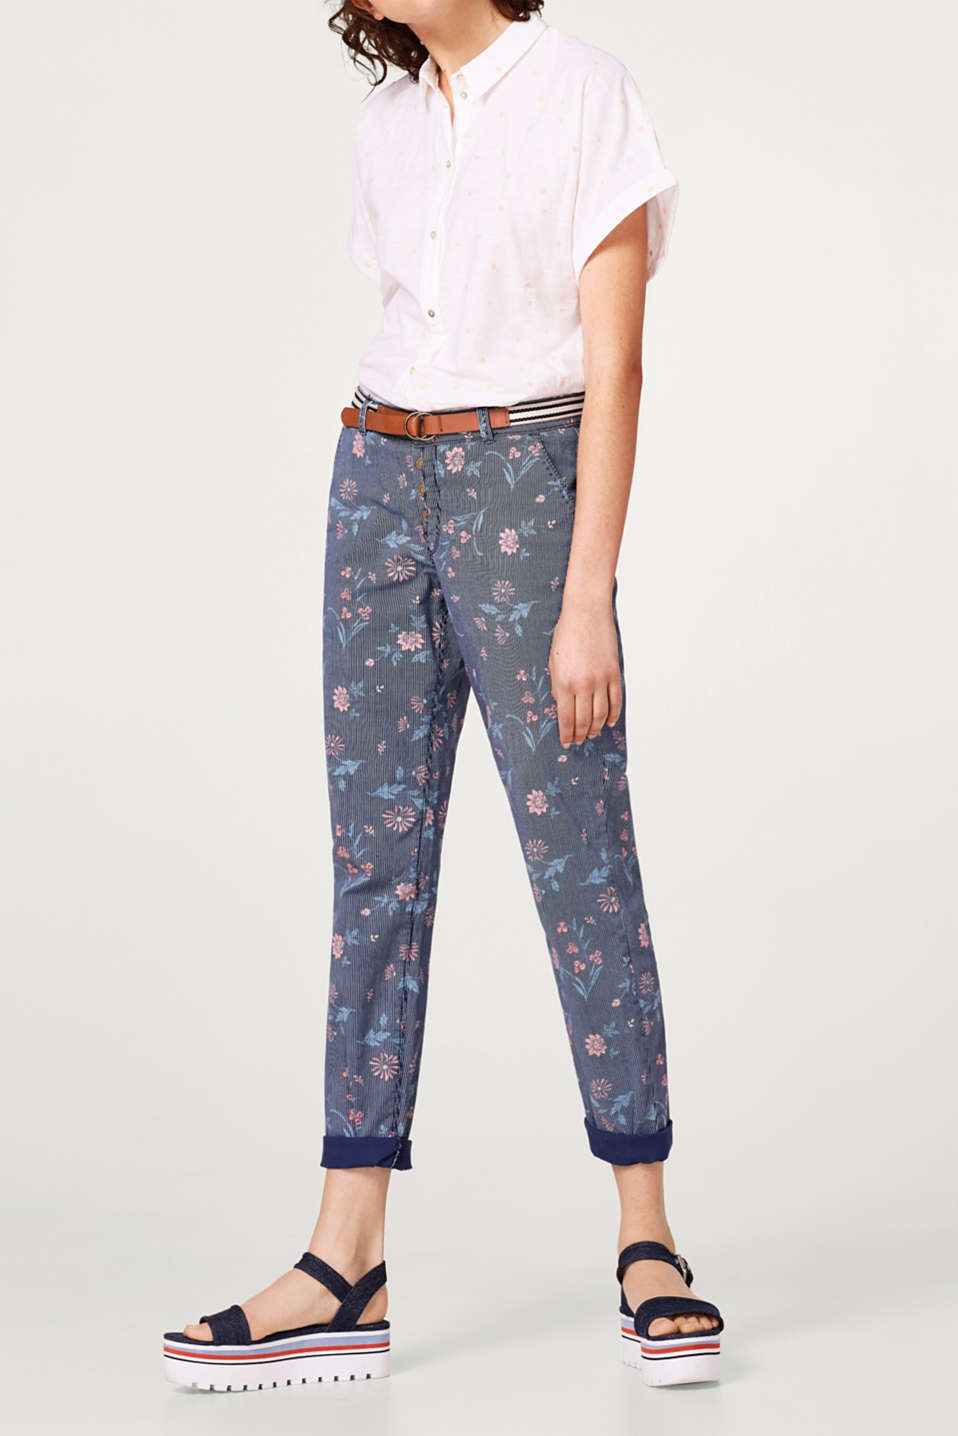 edc - Printed chinos with a button fly and belt